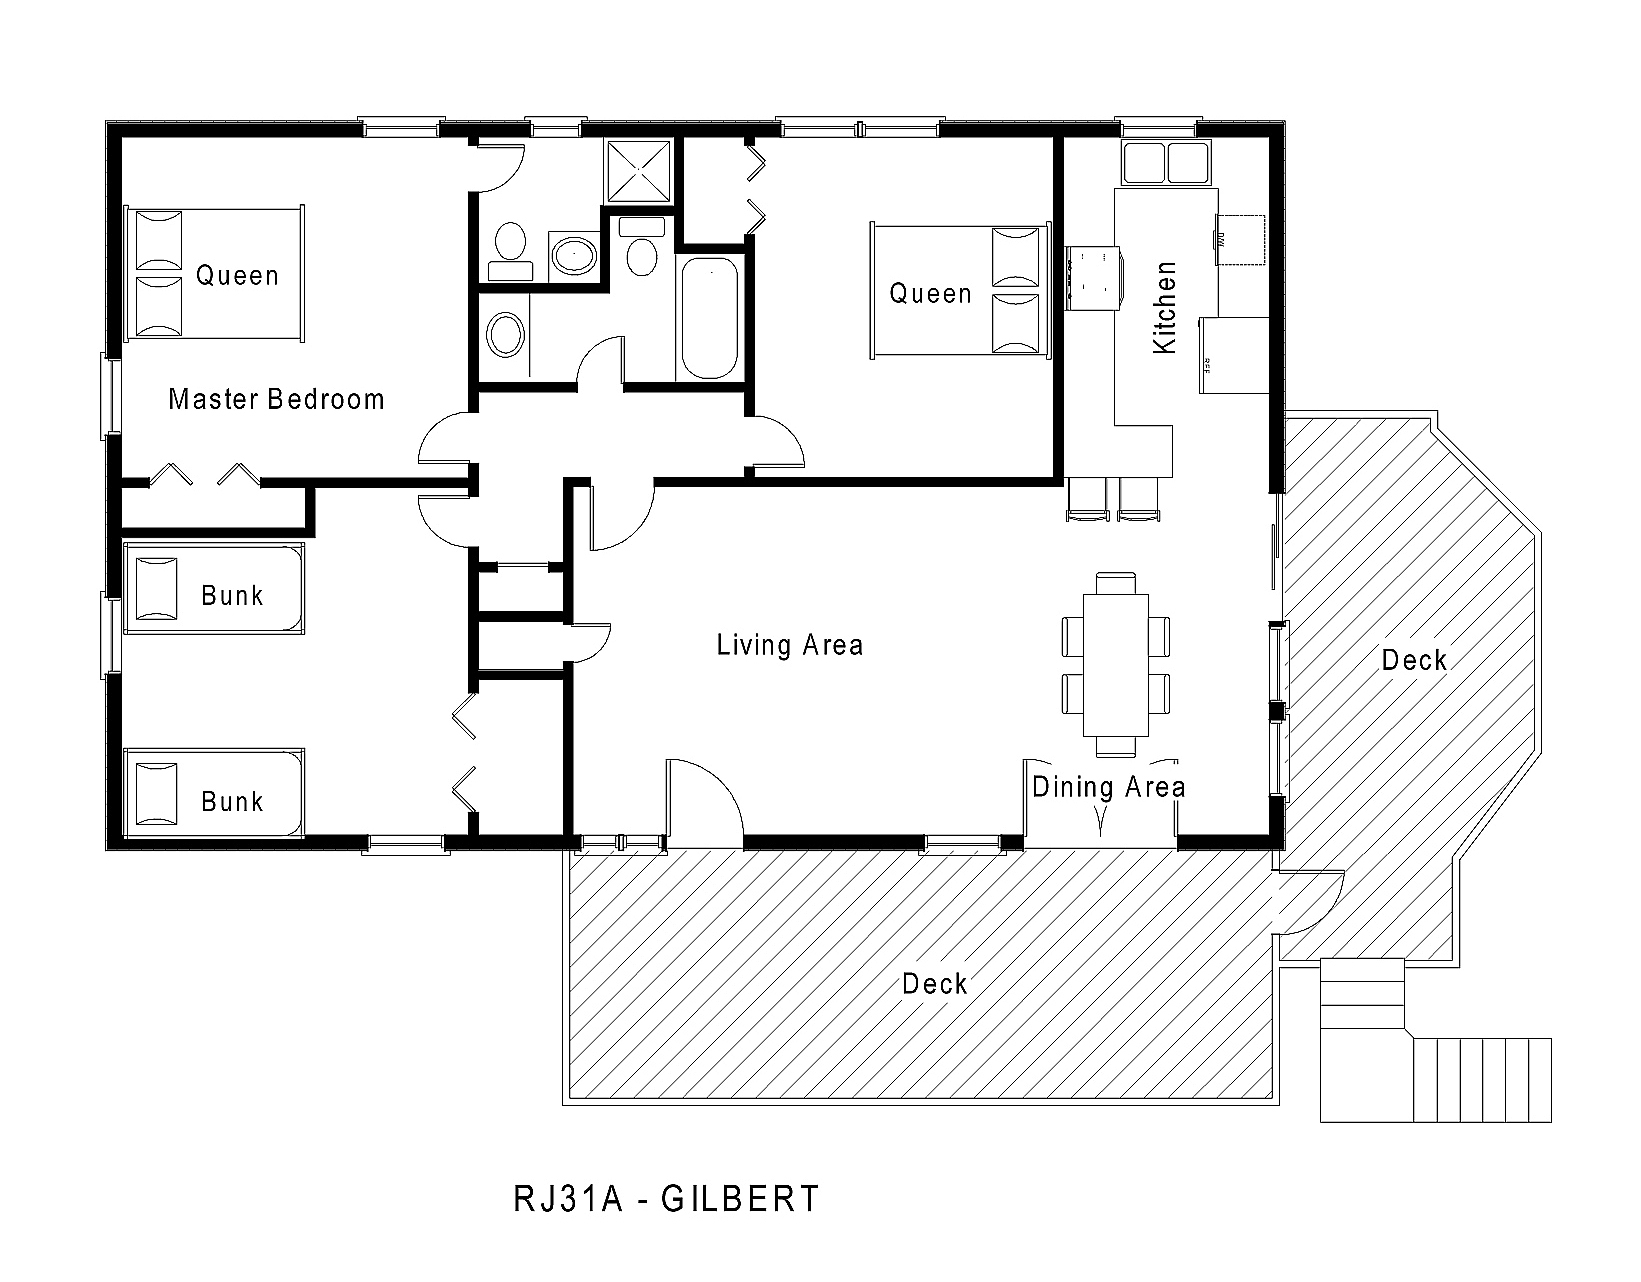 Simple One Story House Plans simple single storey house plans - escortsea